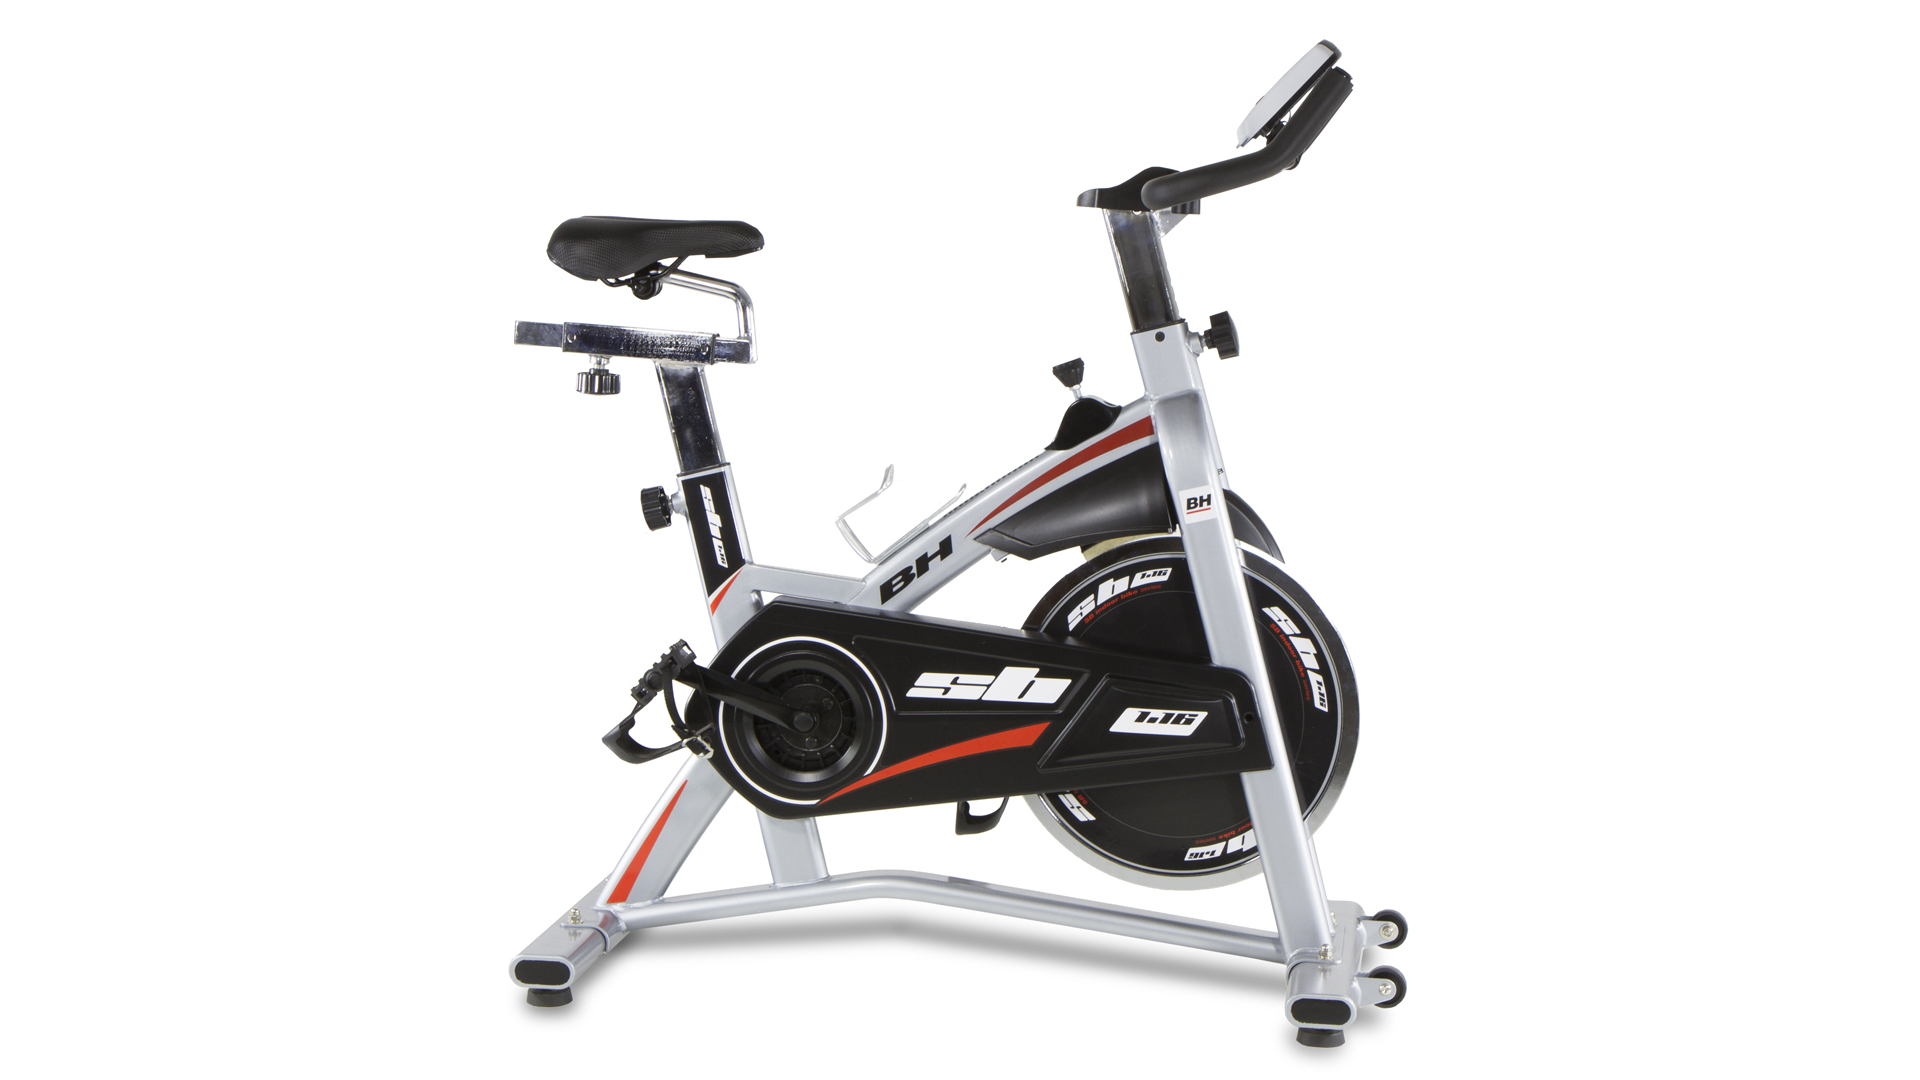 bh fitness indoor cycle h9135l indoor cycling magazin. Black Bedroom Furniture Sets. Home Design Ideas